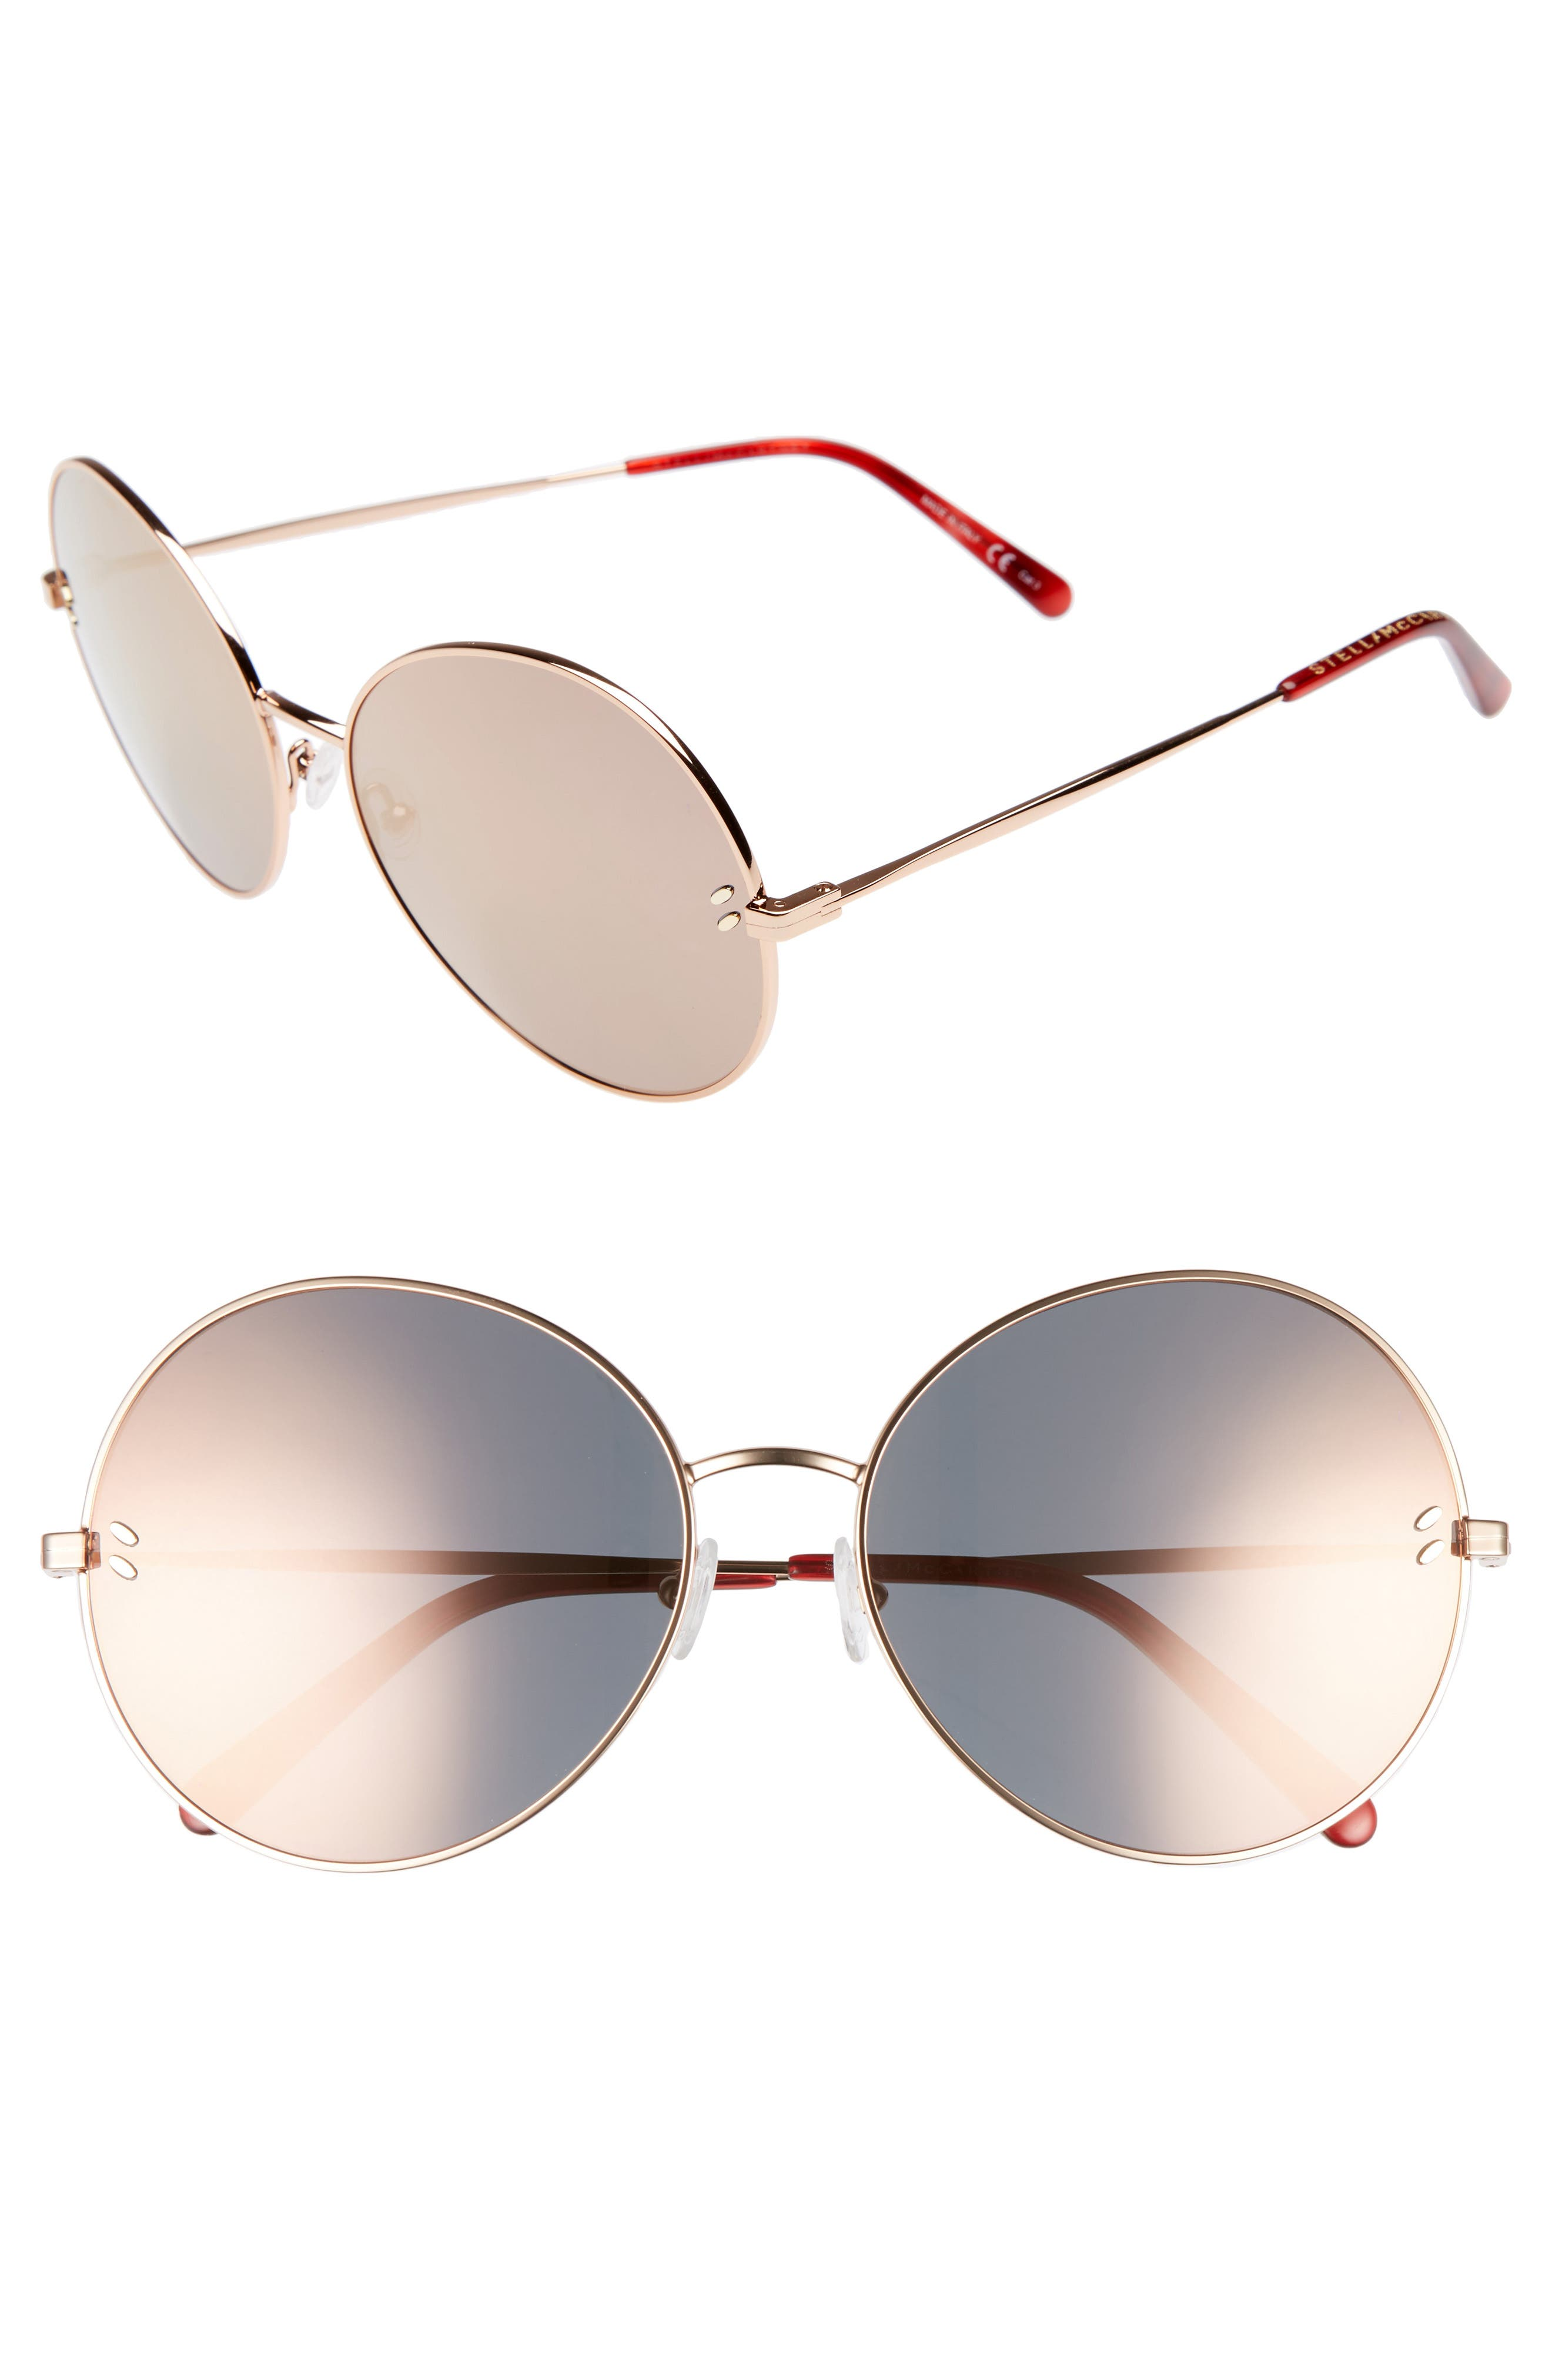 62mm Round Sunglasses,                             Main thumbnail 2, color,